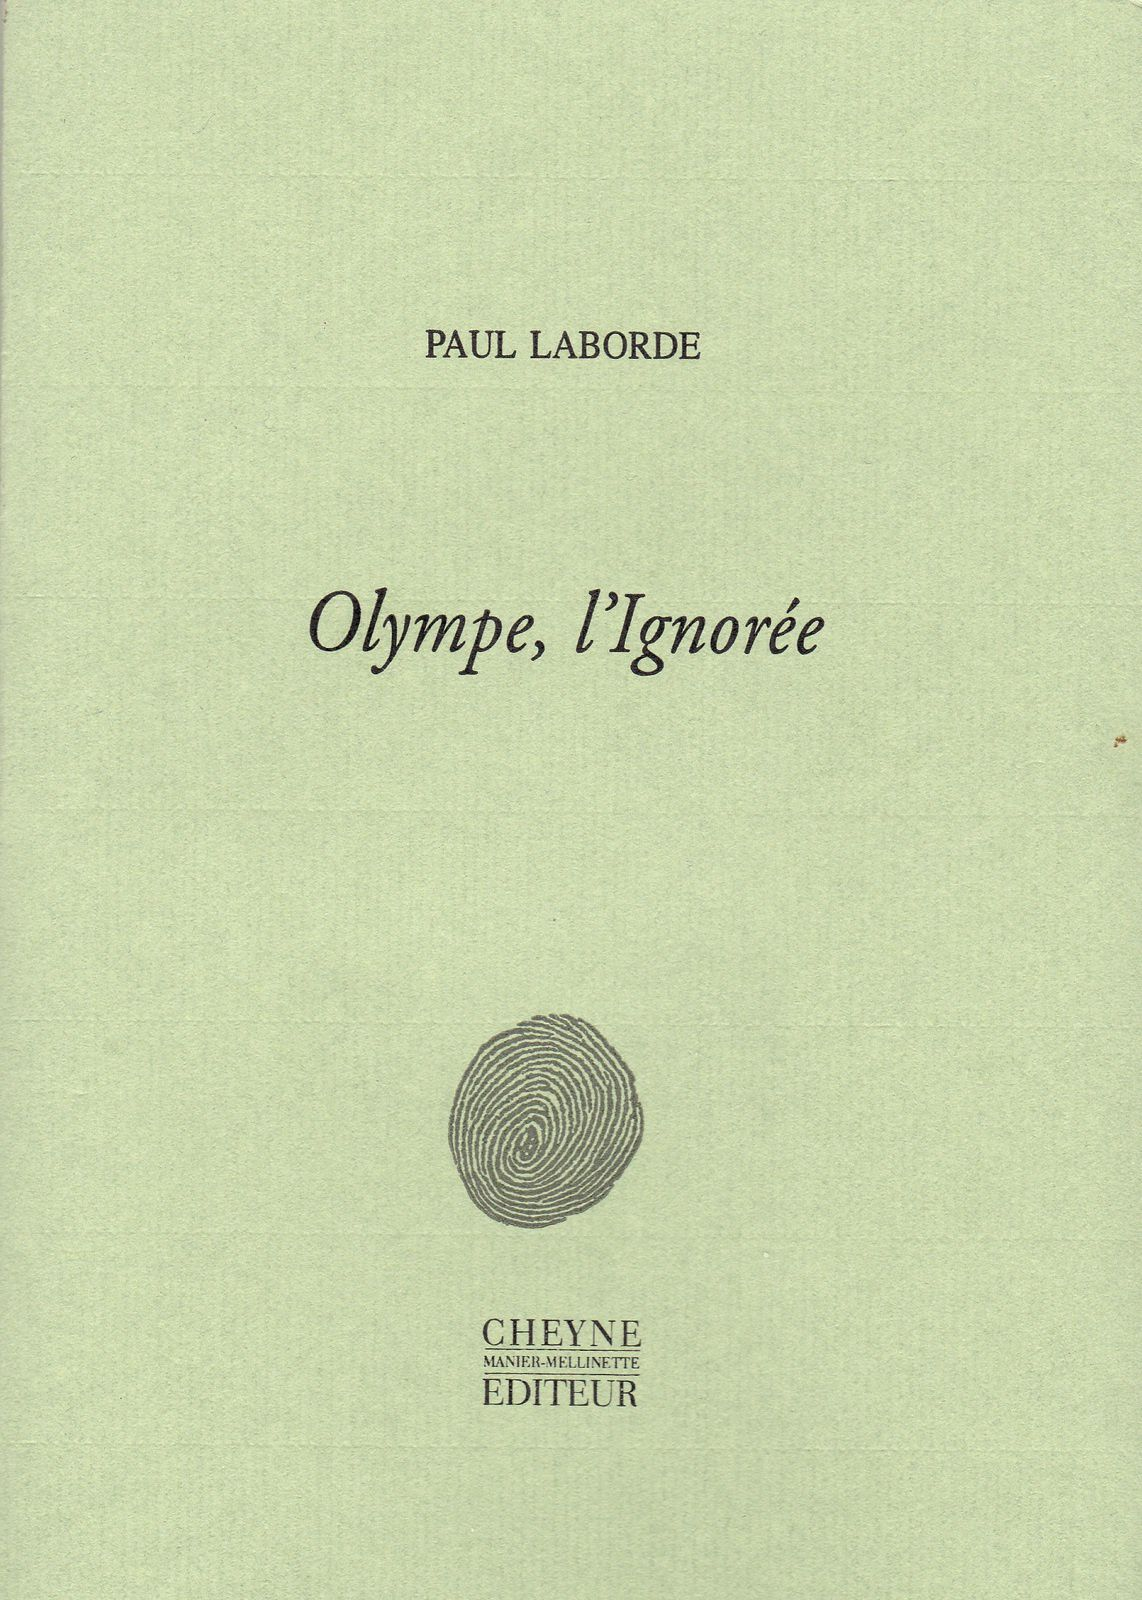 Observations - Paul Laborde